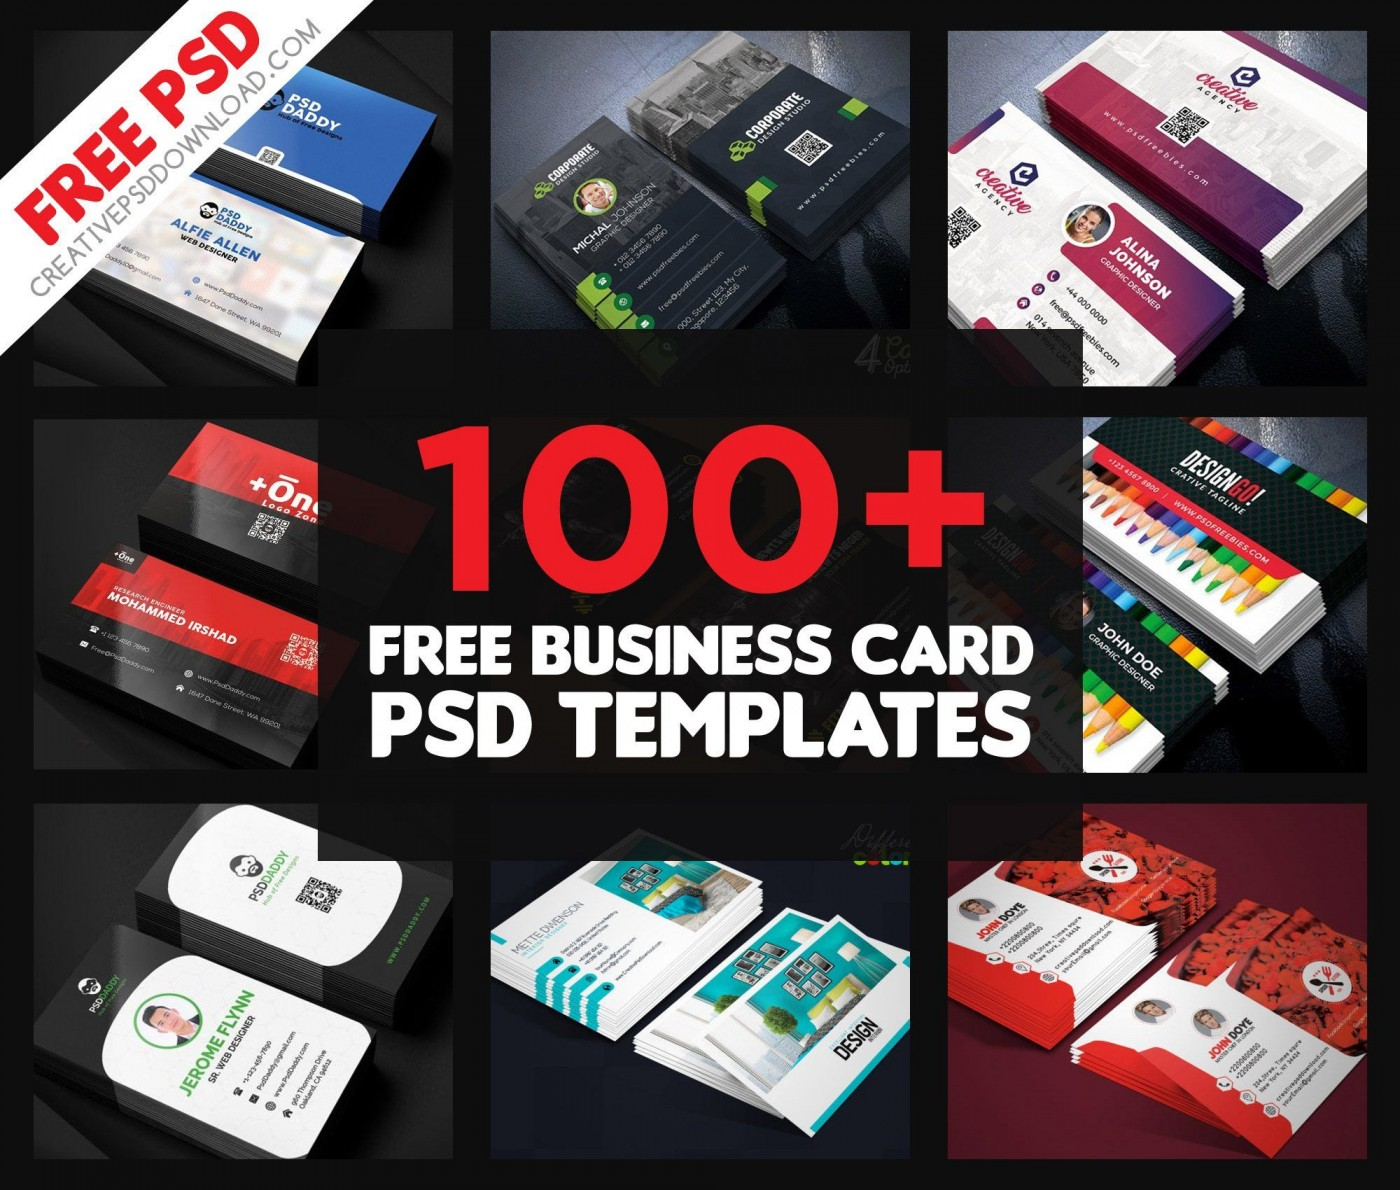 005 Amazing Free Adobe Photoshop Busines Card Template Highest Clarity  Download1400